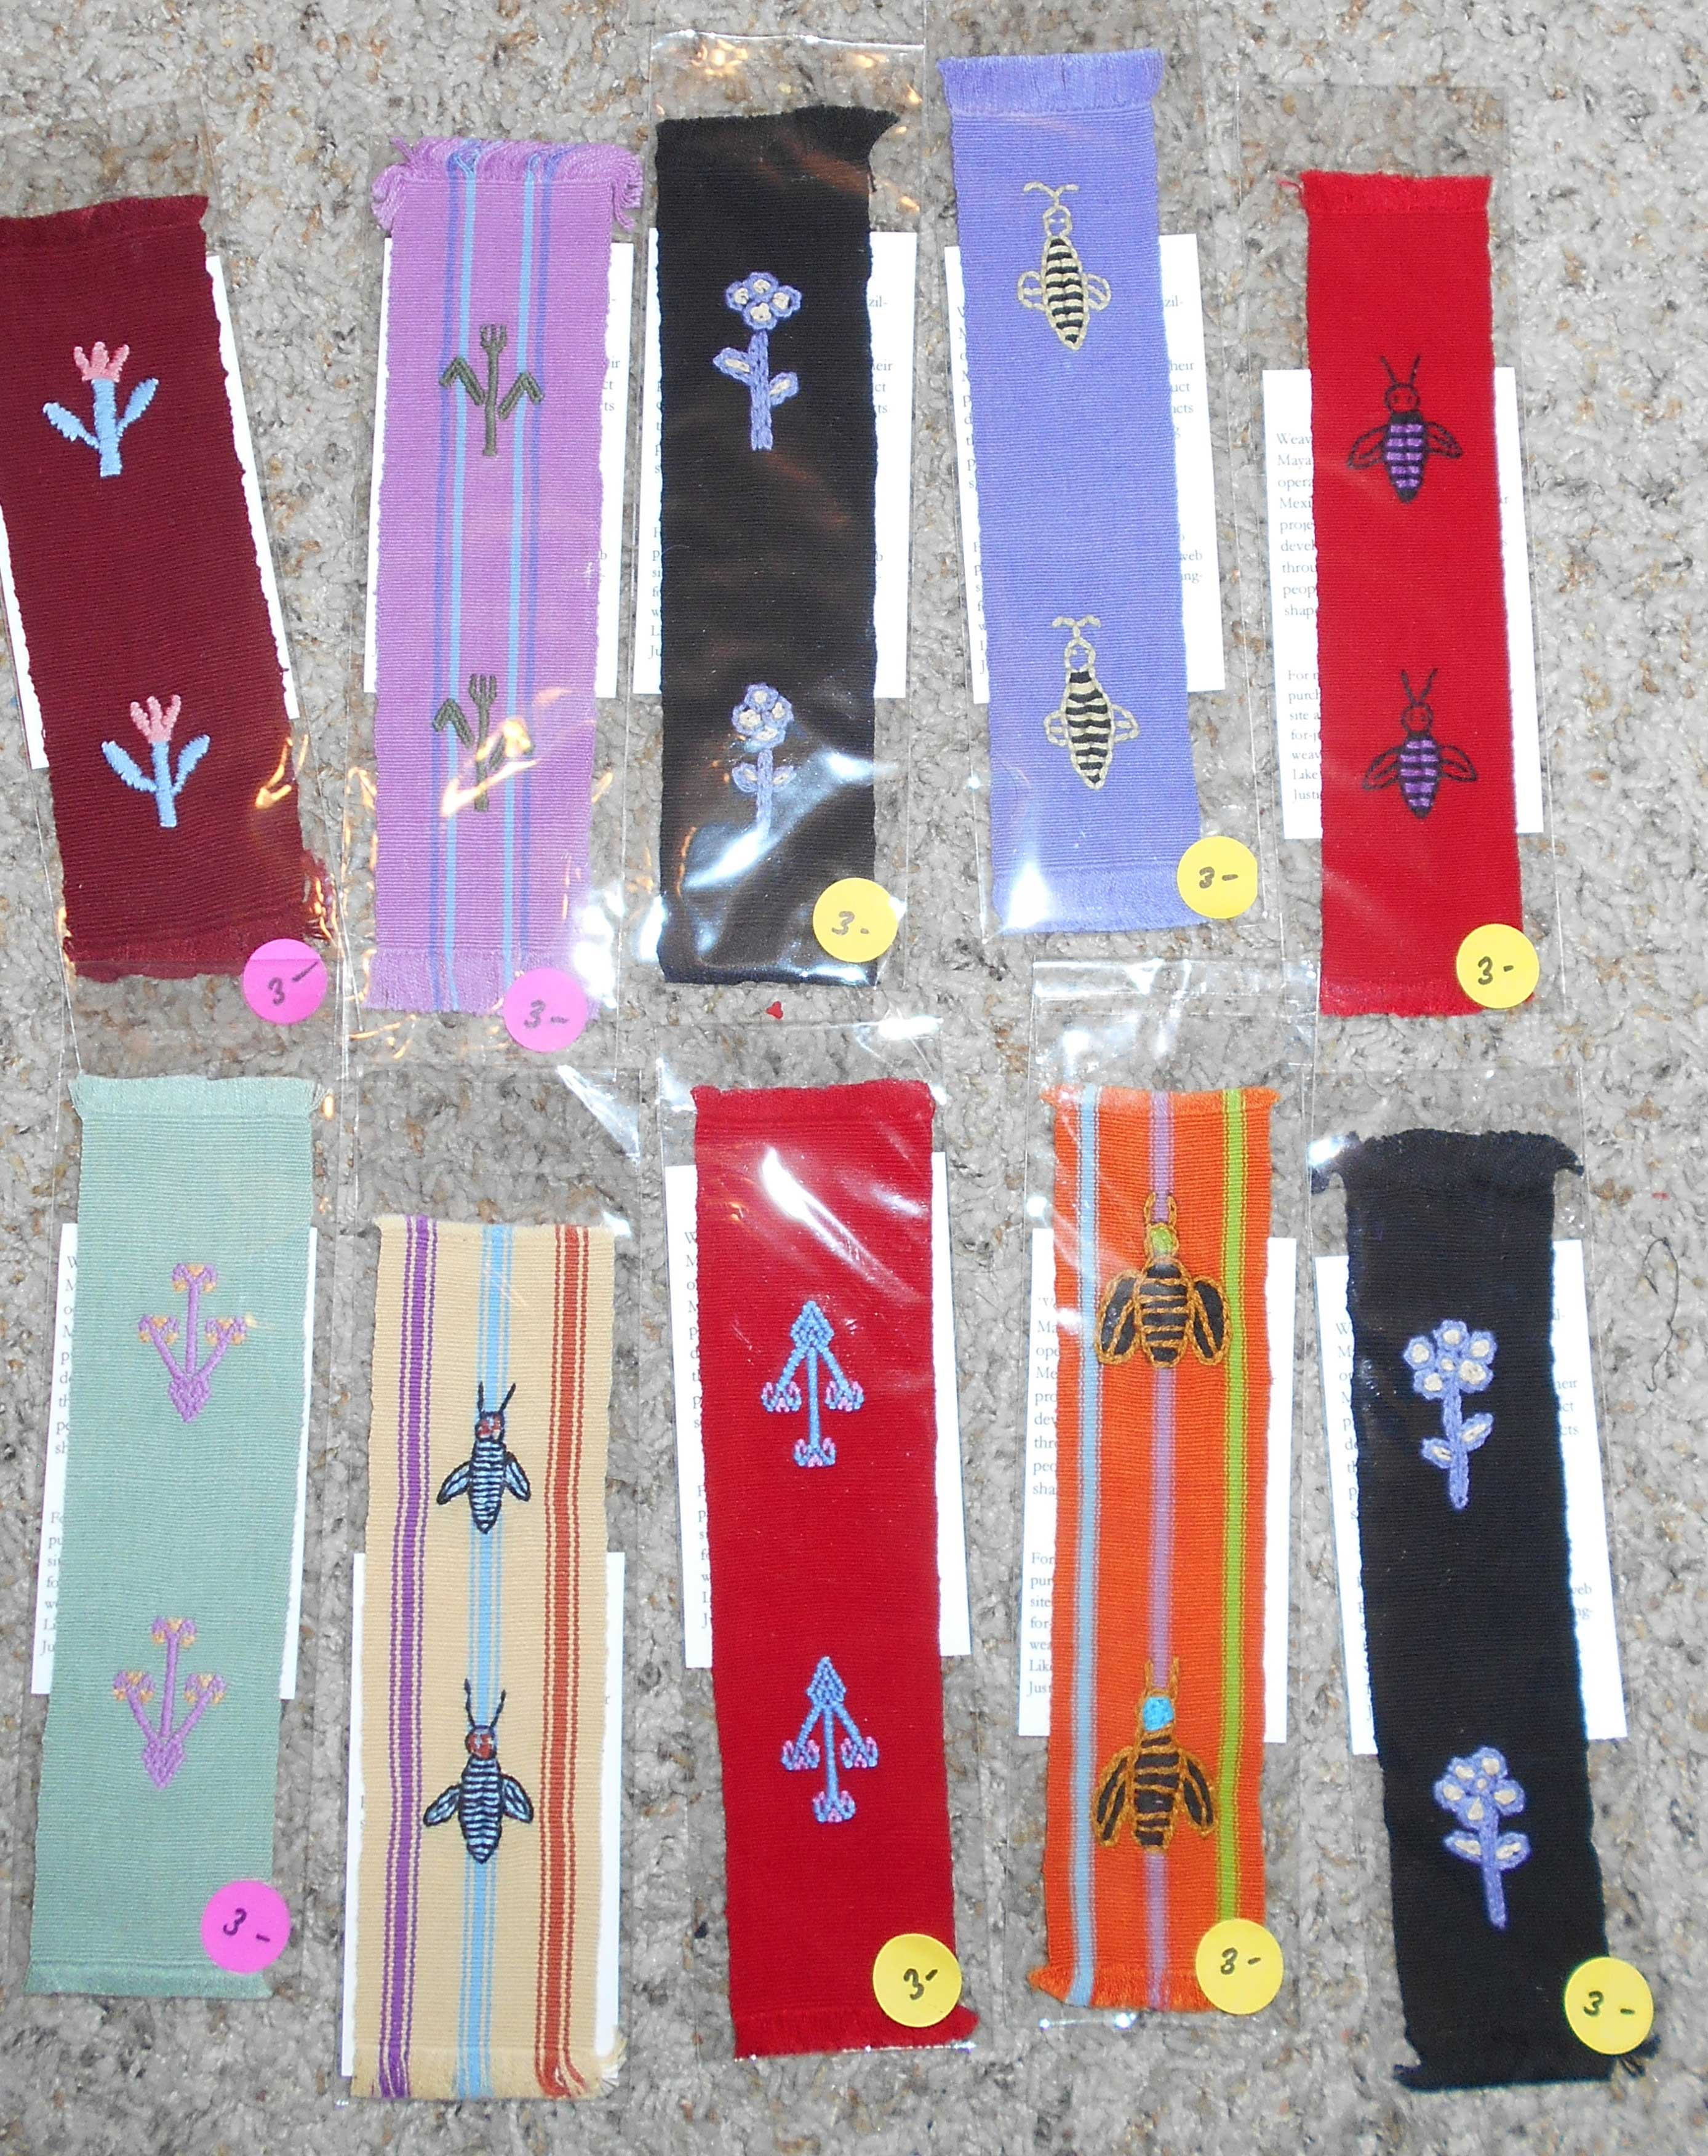 Assortment of 4 book marks woven on a back-strap loom in a variety of colors and designs - $15 includes postage.